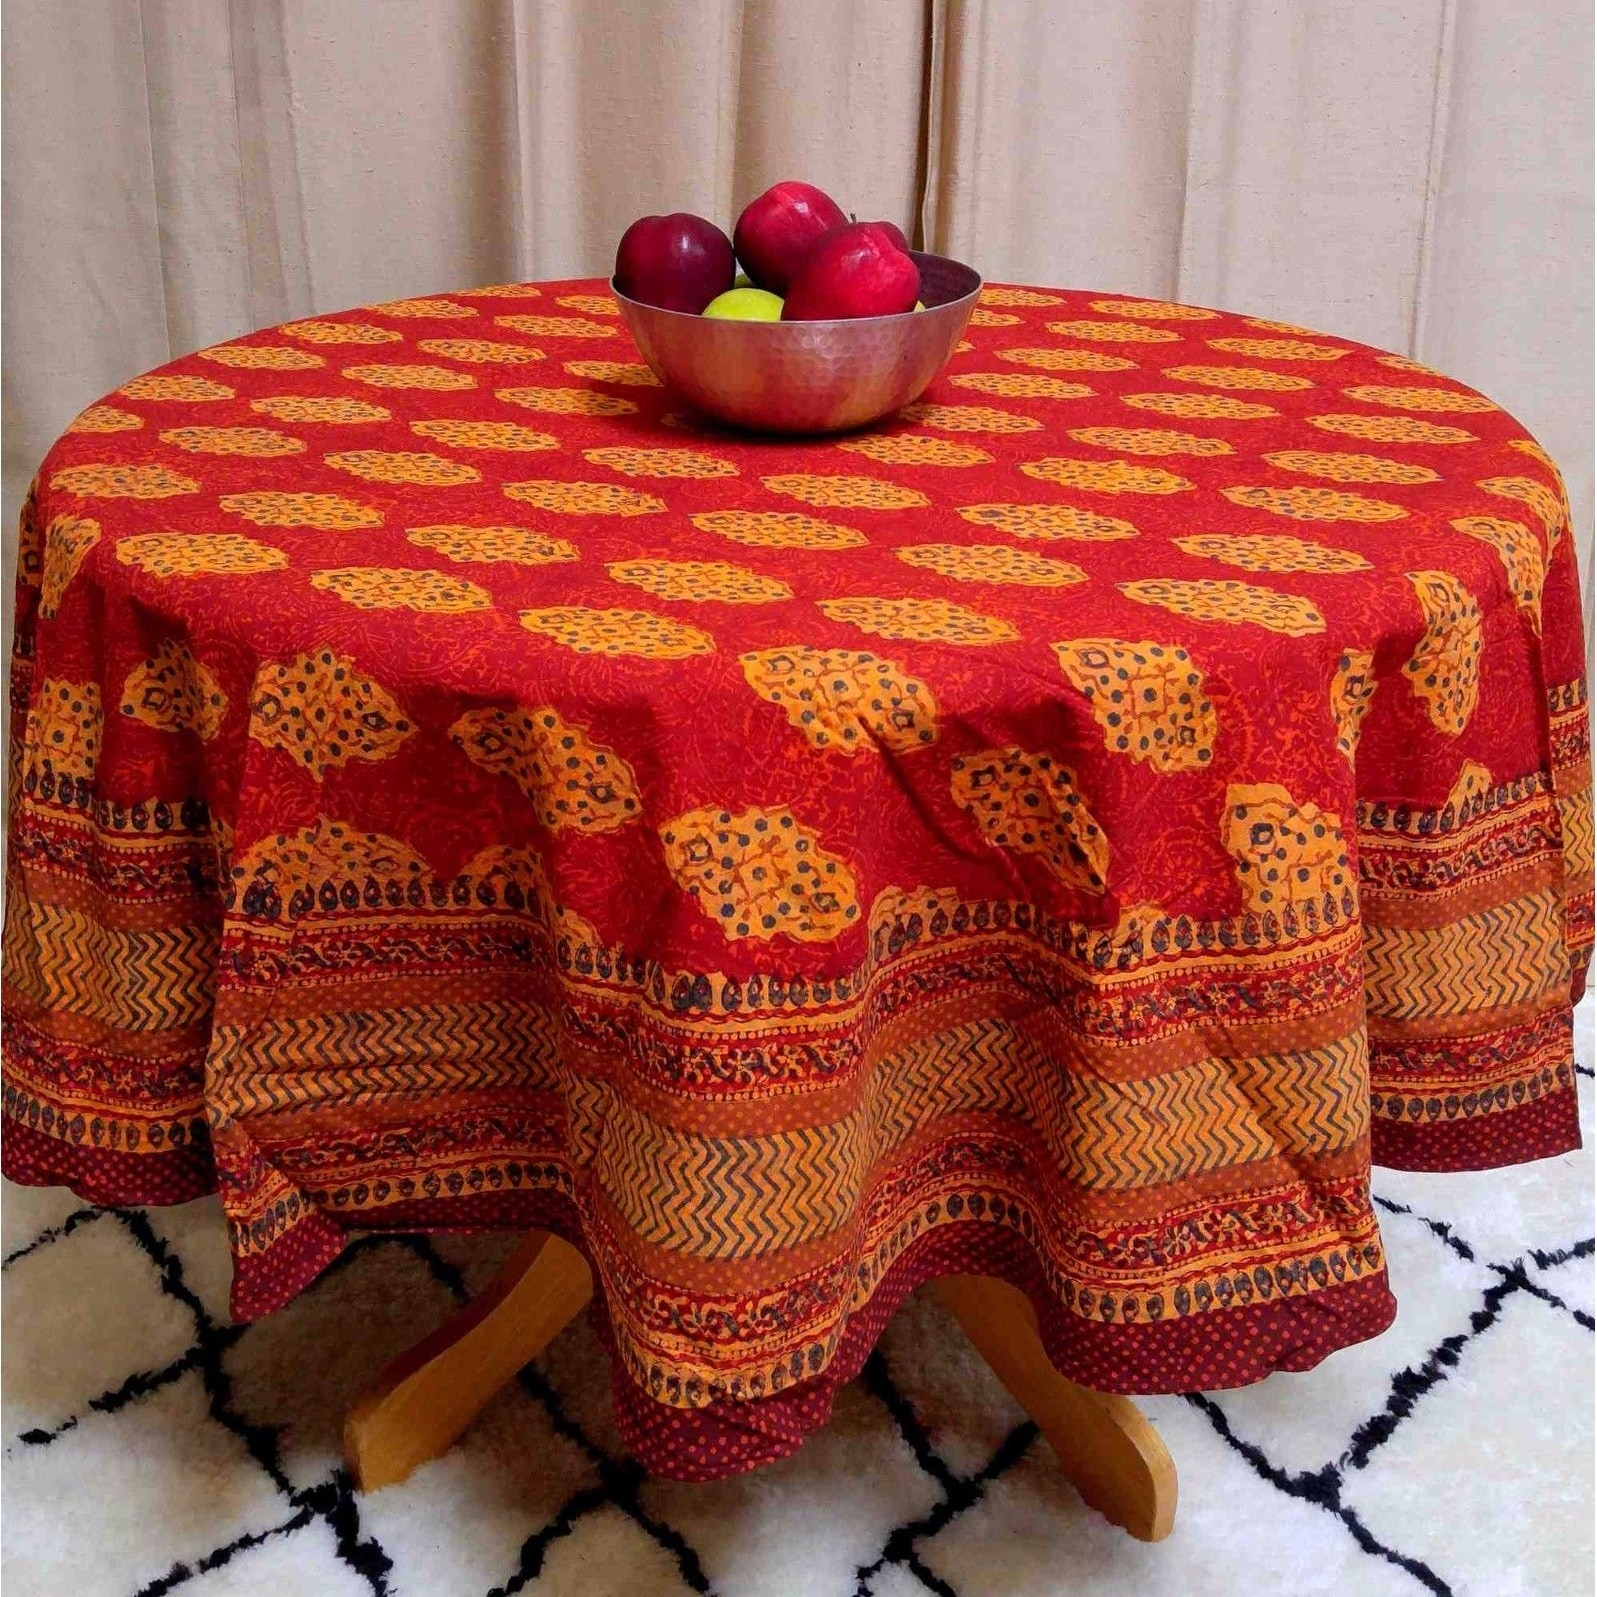 Cotton Kensington Block Print Tablecloth Rectangular Square Round Rust Brown - Thumbnail 5